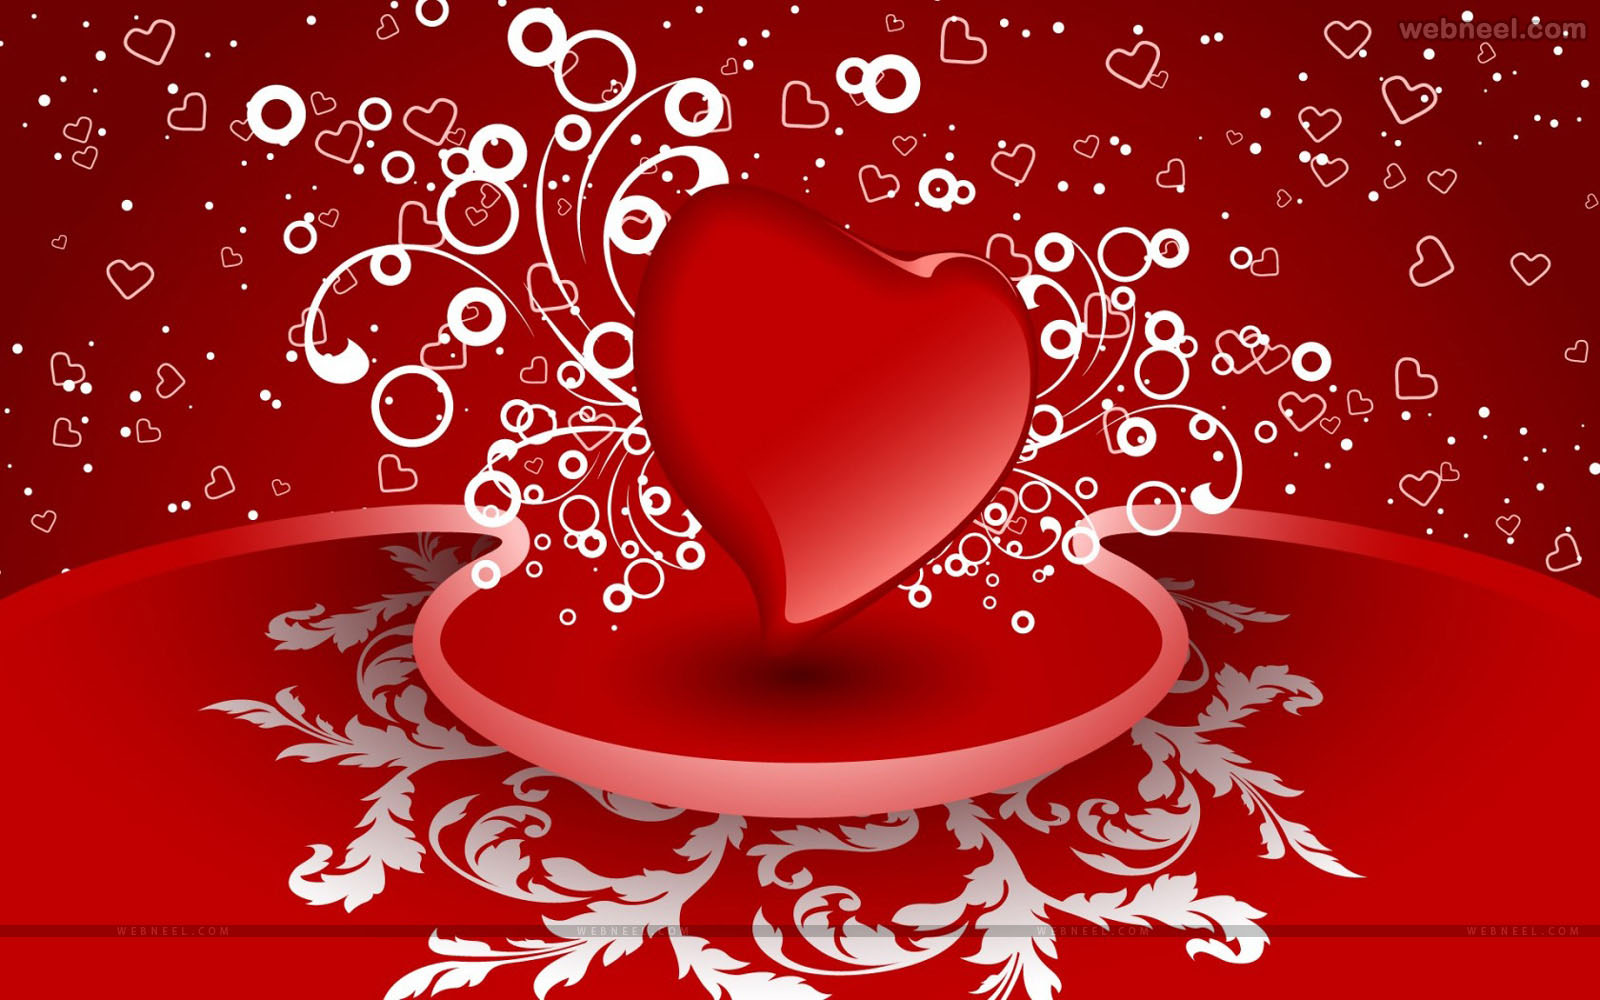 red heart romantic valentine wallpaper